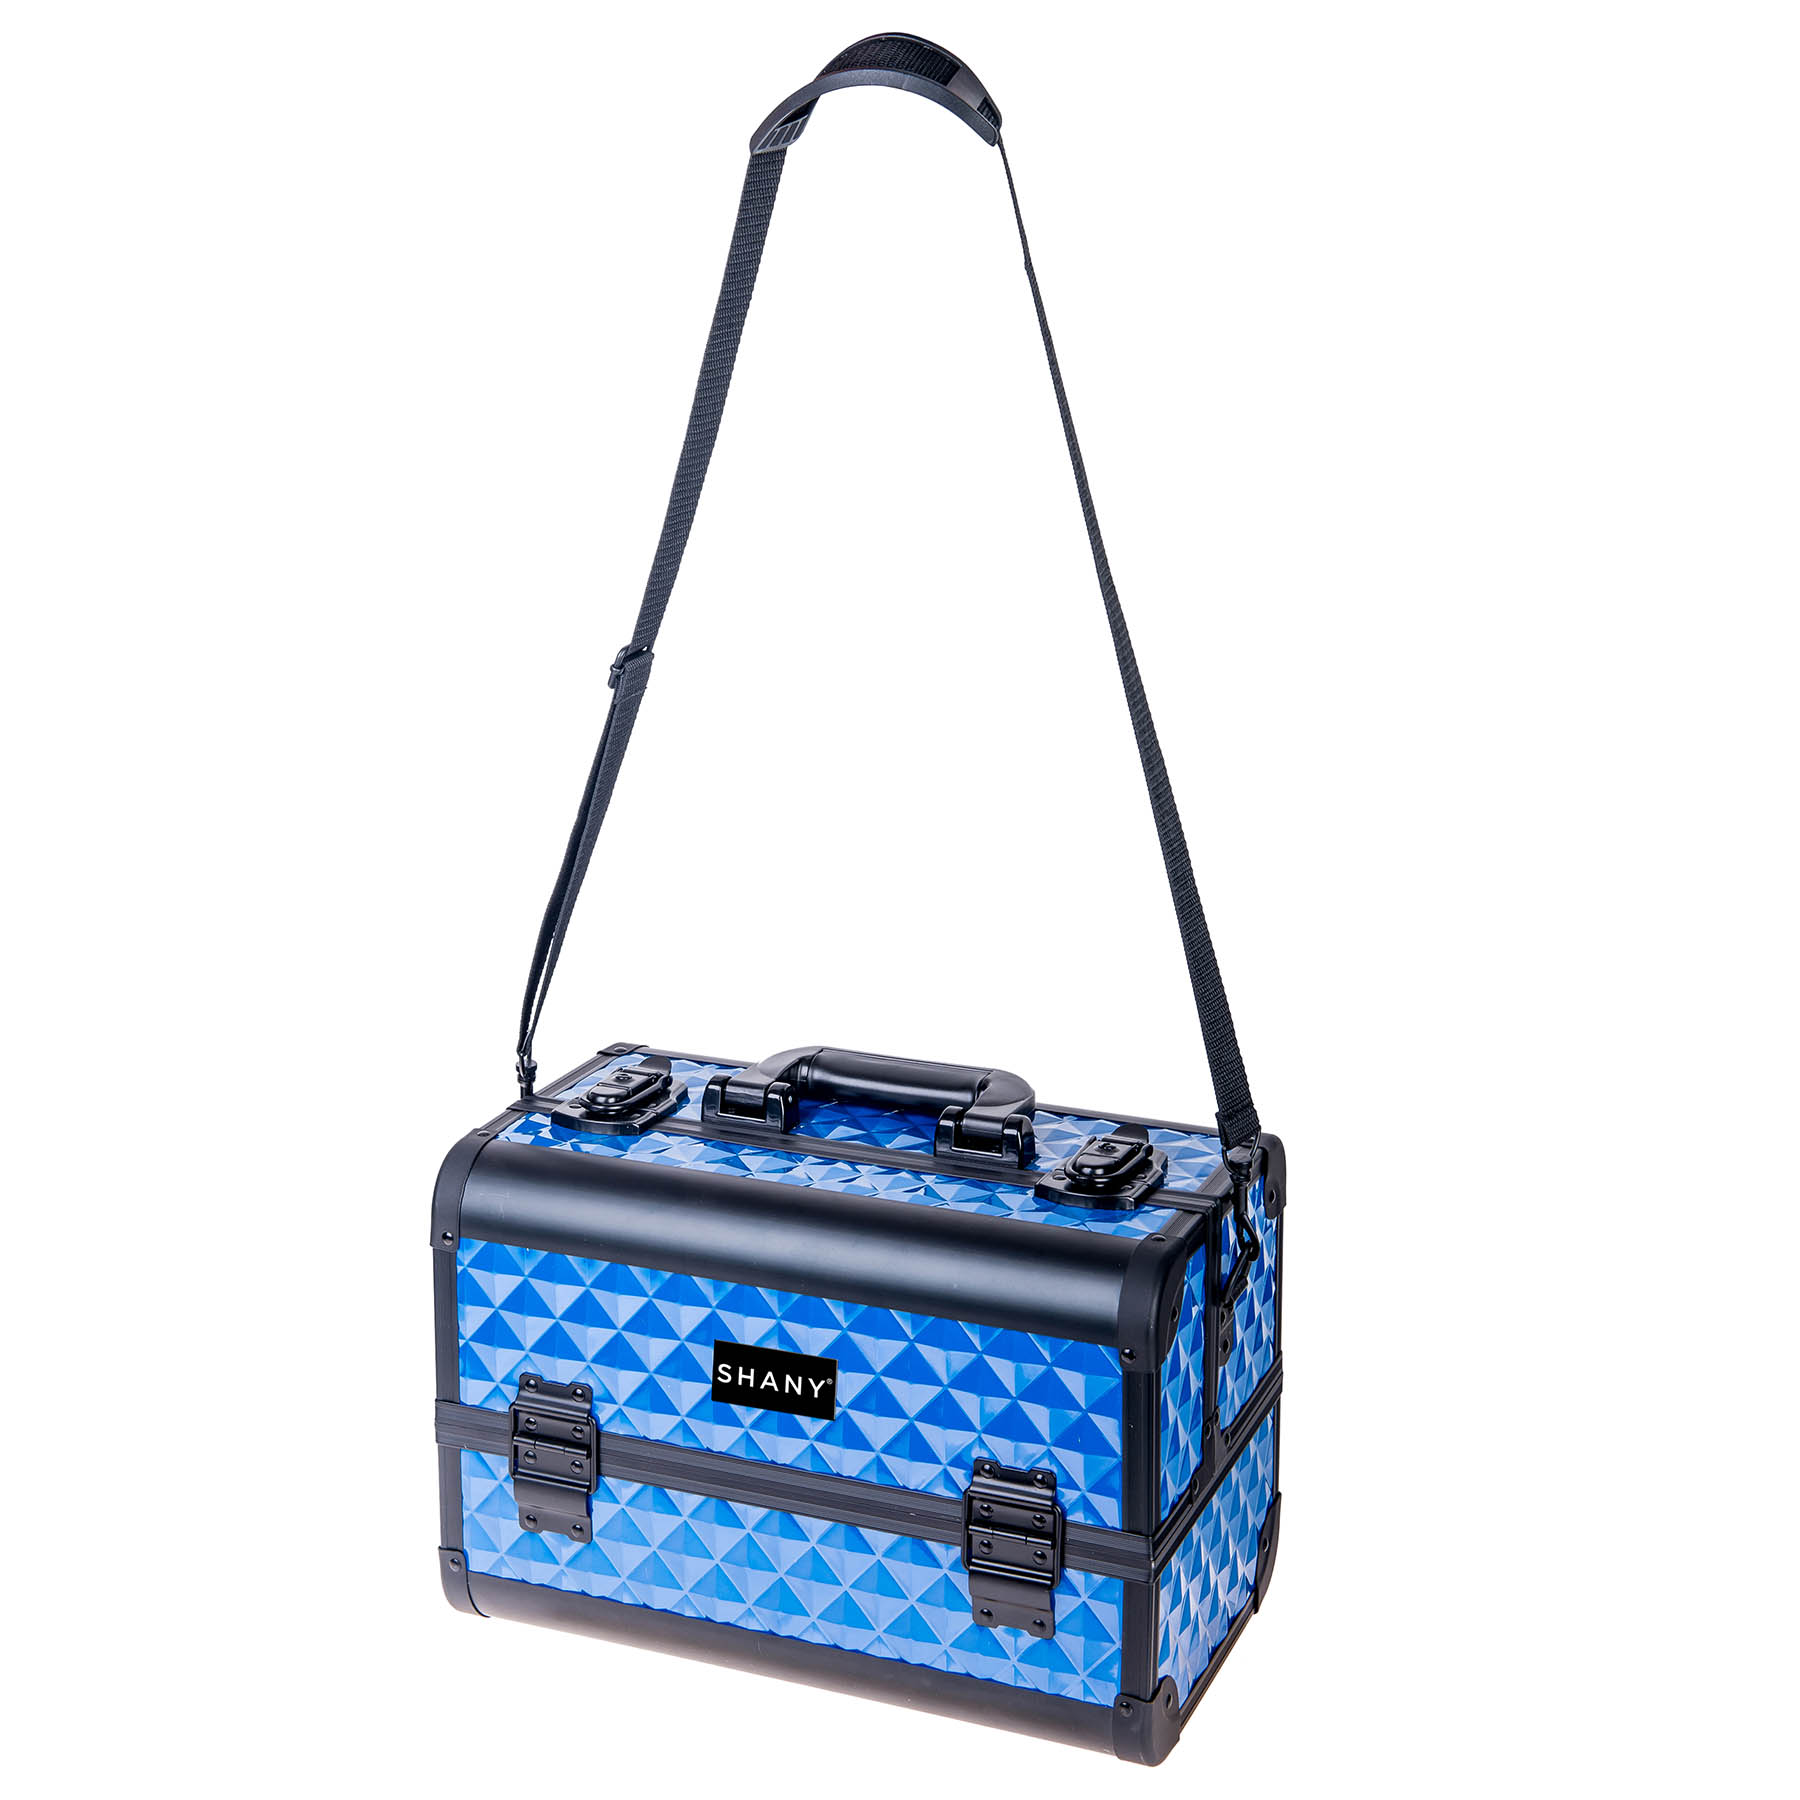 SHANY-Fantasy-Collection-Makeup-Artists-Cosmetics-Train-Case miniature 19